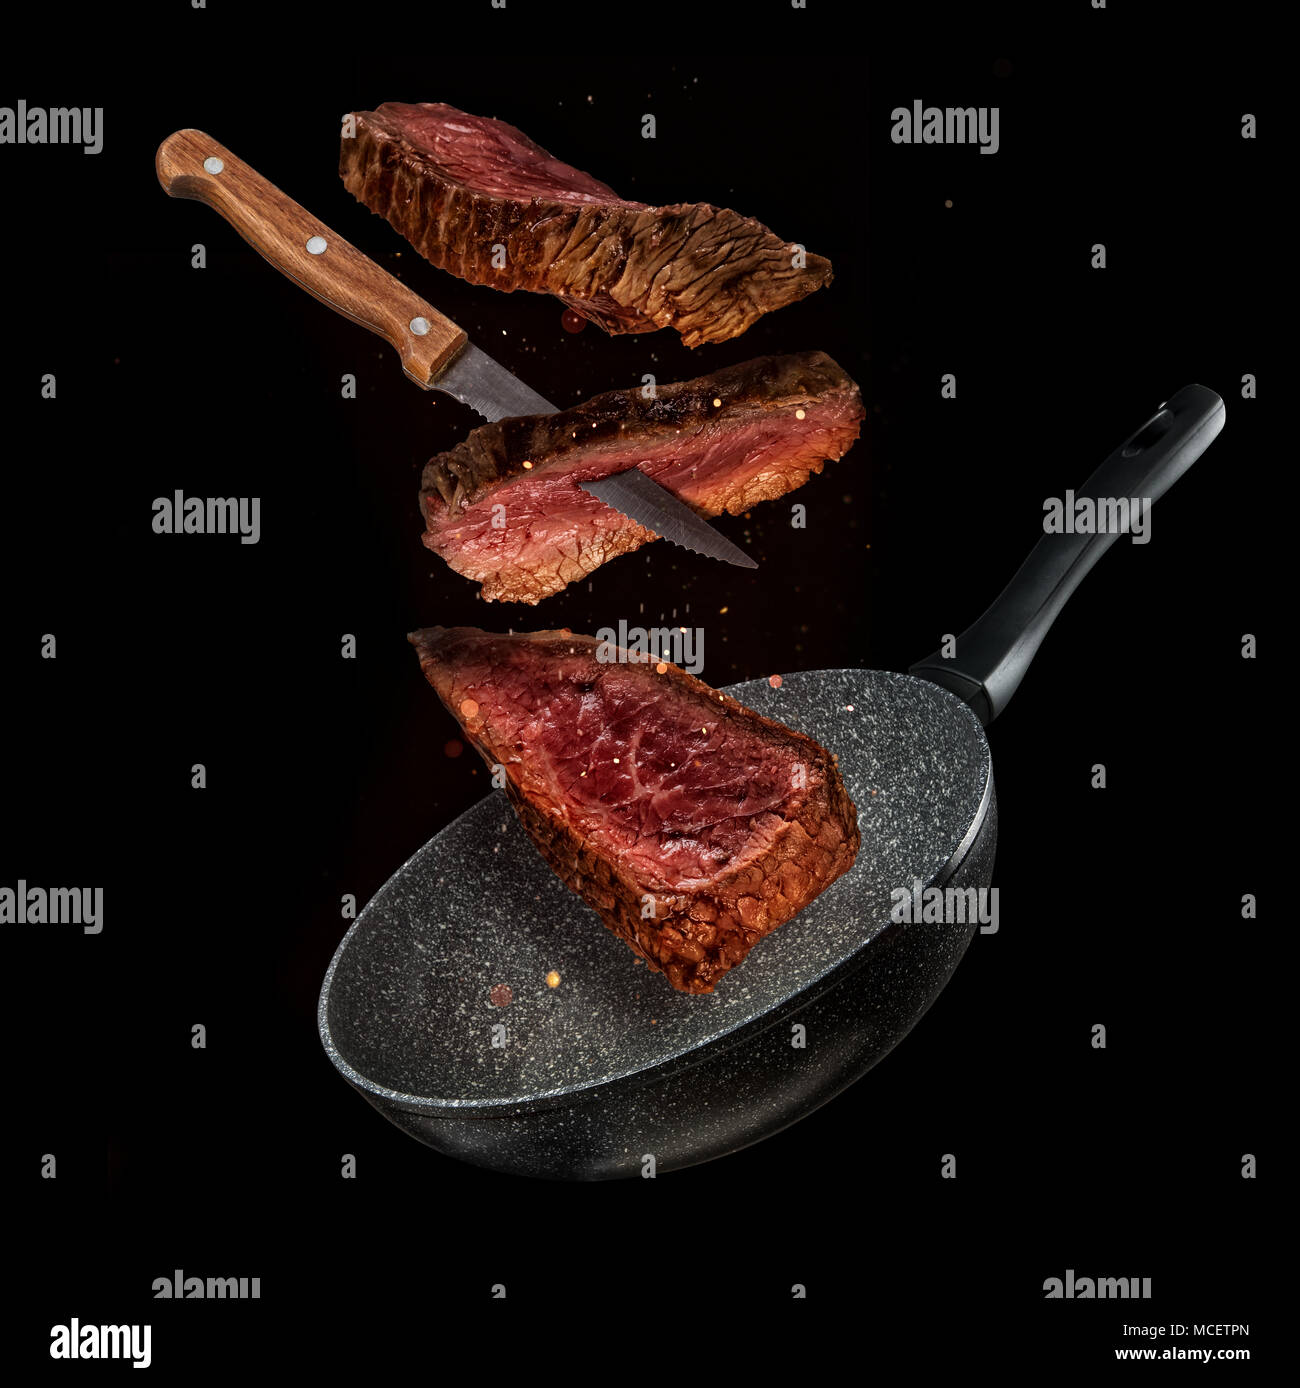 Flying Pieces Of Beef Steaks From Pan Isolated On Black Background